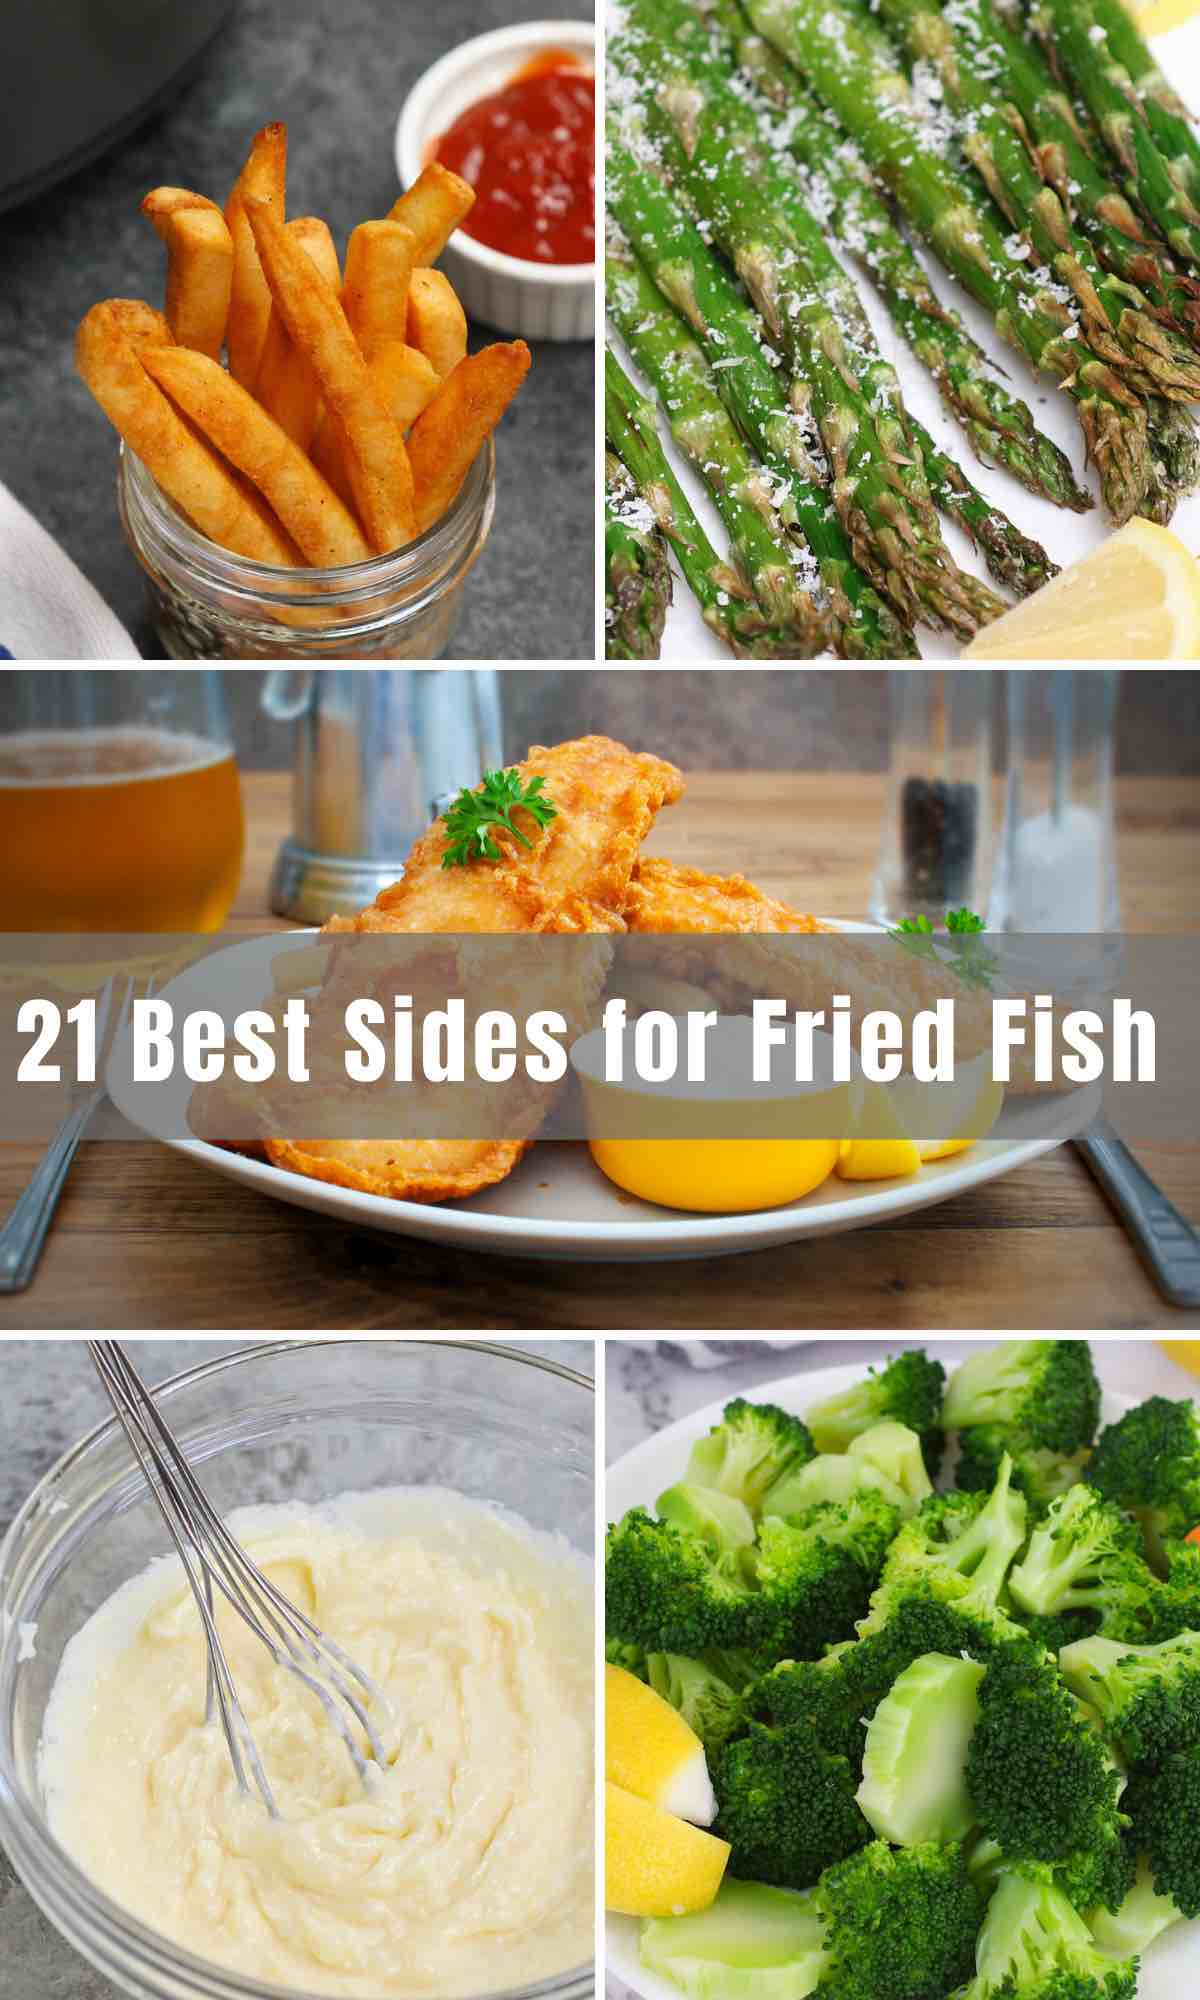 If you are preparing for a fried fish dinner, you definitely won't run out of options when following the list of Best Sides Fried Fish below. From healthy side dishes to vegetable side dishes, to sides for southern style fish or fried catfish, we'll give you some finger-licking and fun suggestions on what goes best and what tastes best with your fish dish.